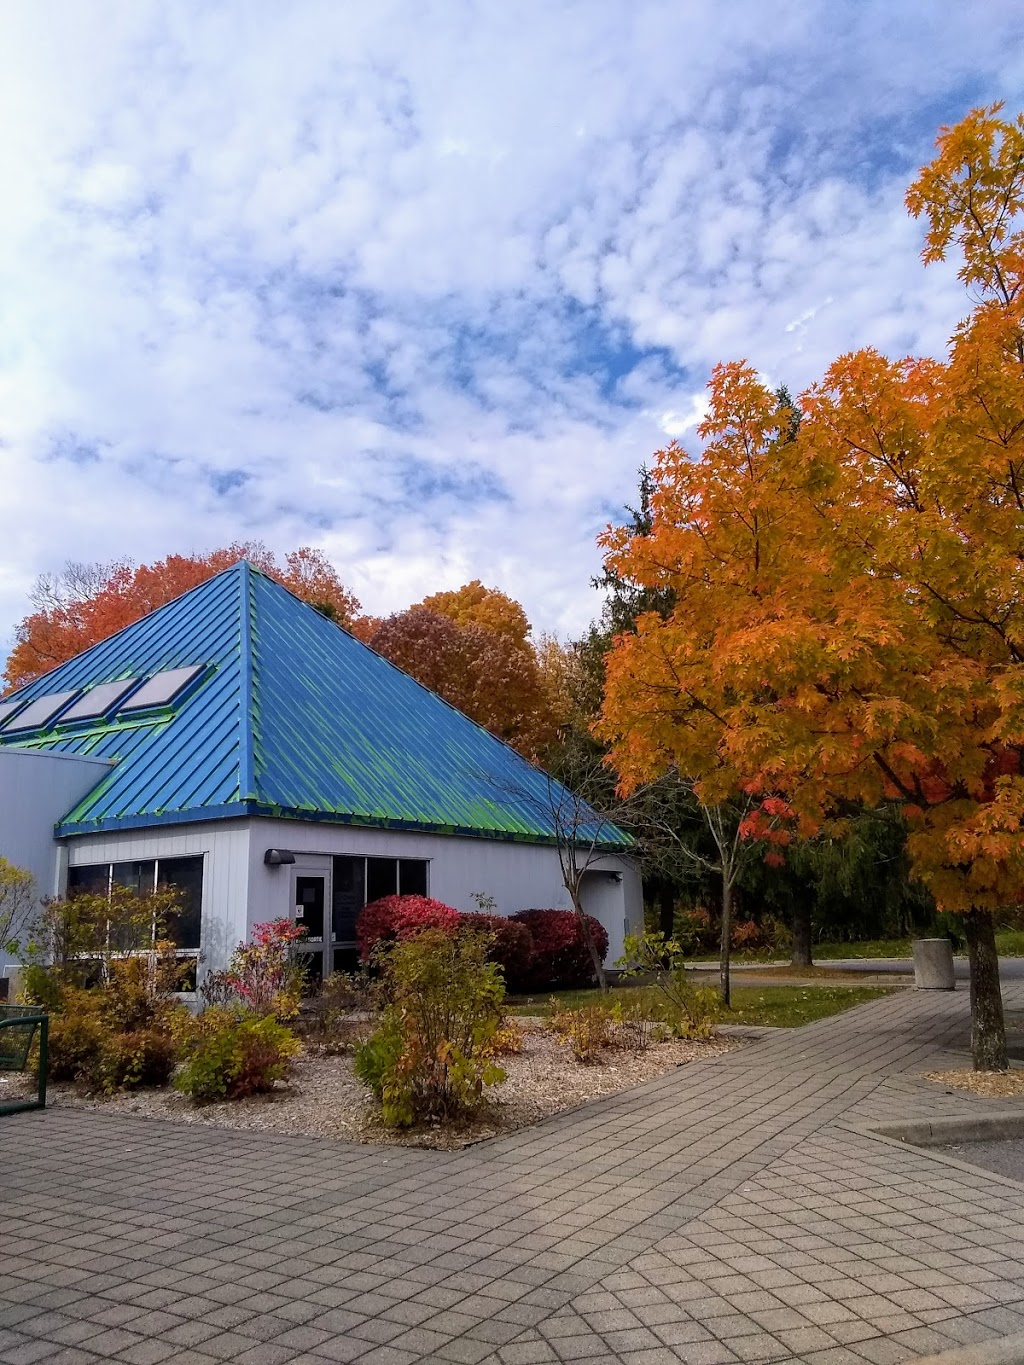 Ontario Travel Information Centre - Hawkesbury | store | 777 ON-417, Chute-à-Blondeau, ON K0B 1B0, Canada | 6136742000 OR +1 613-674-2000